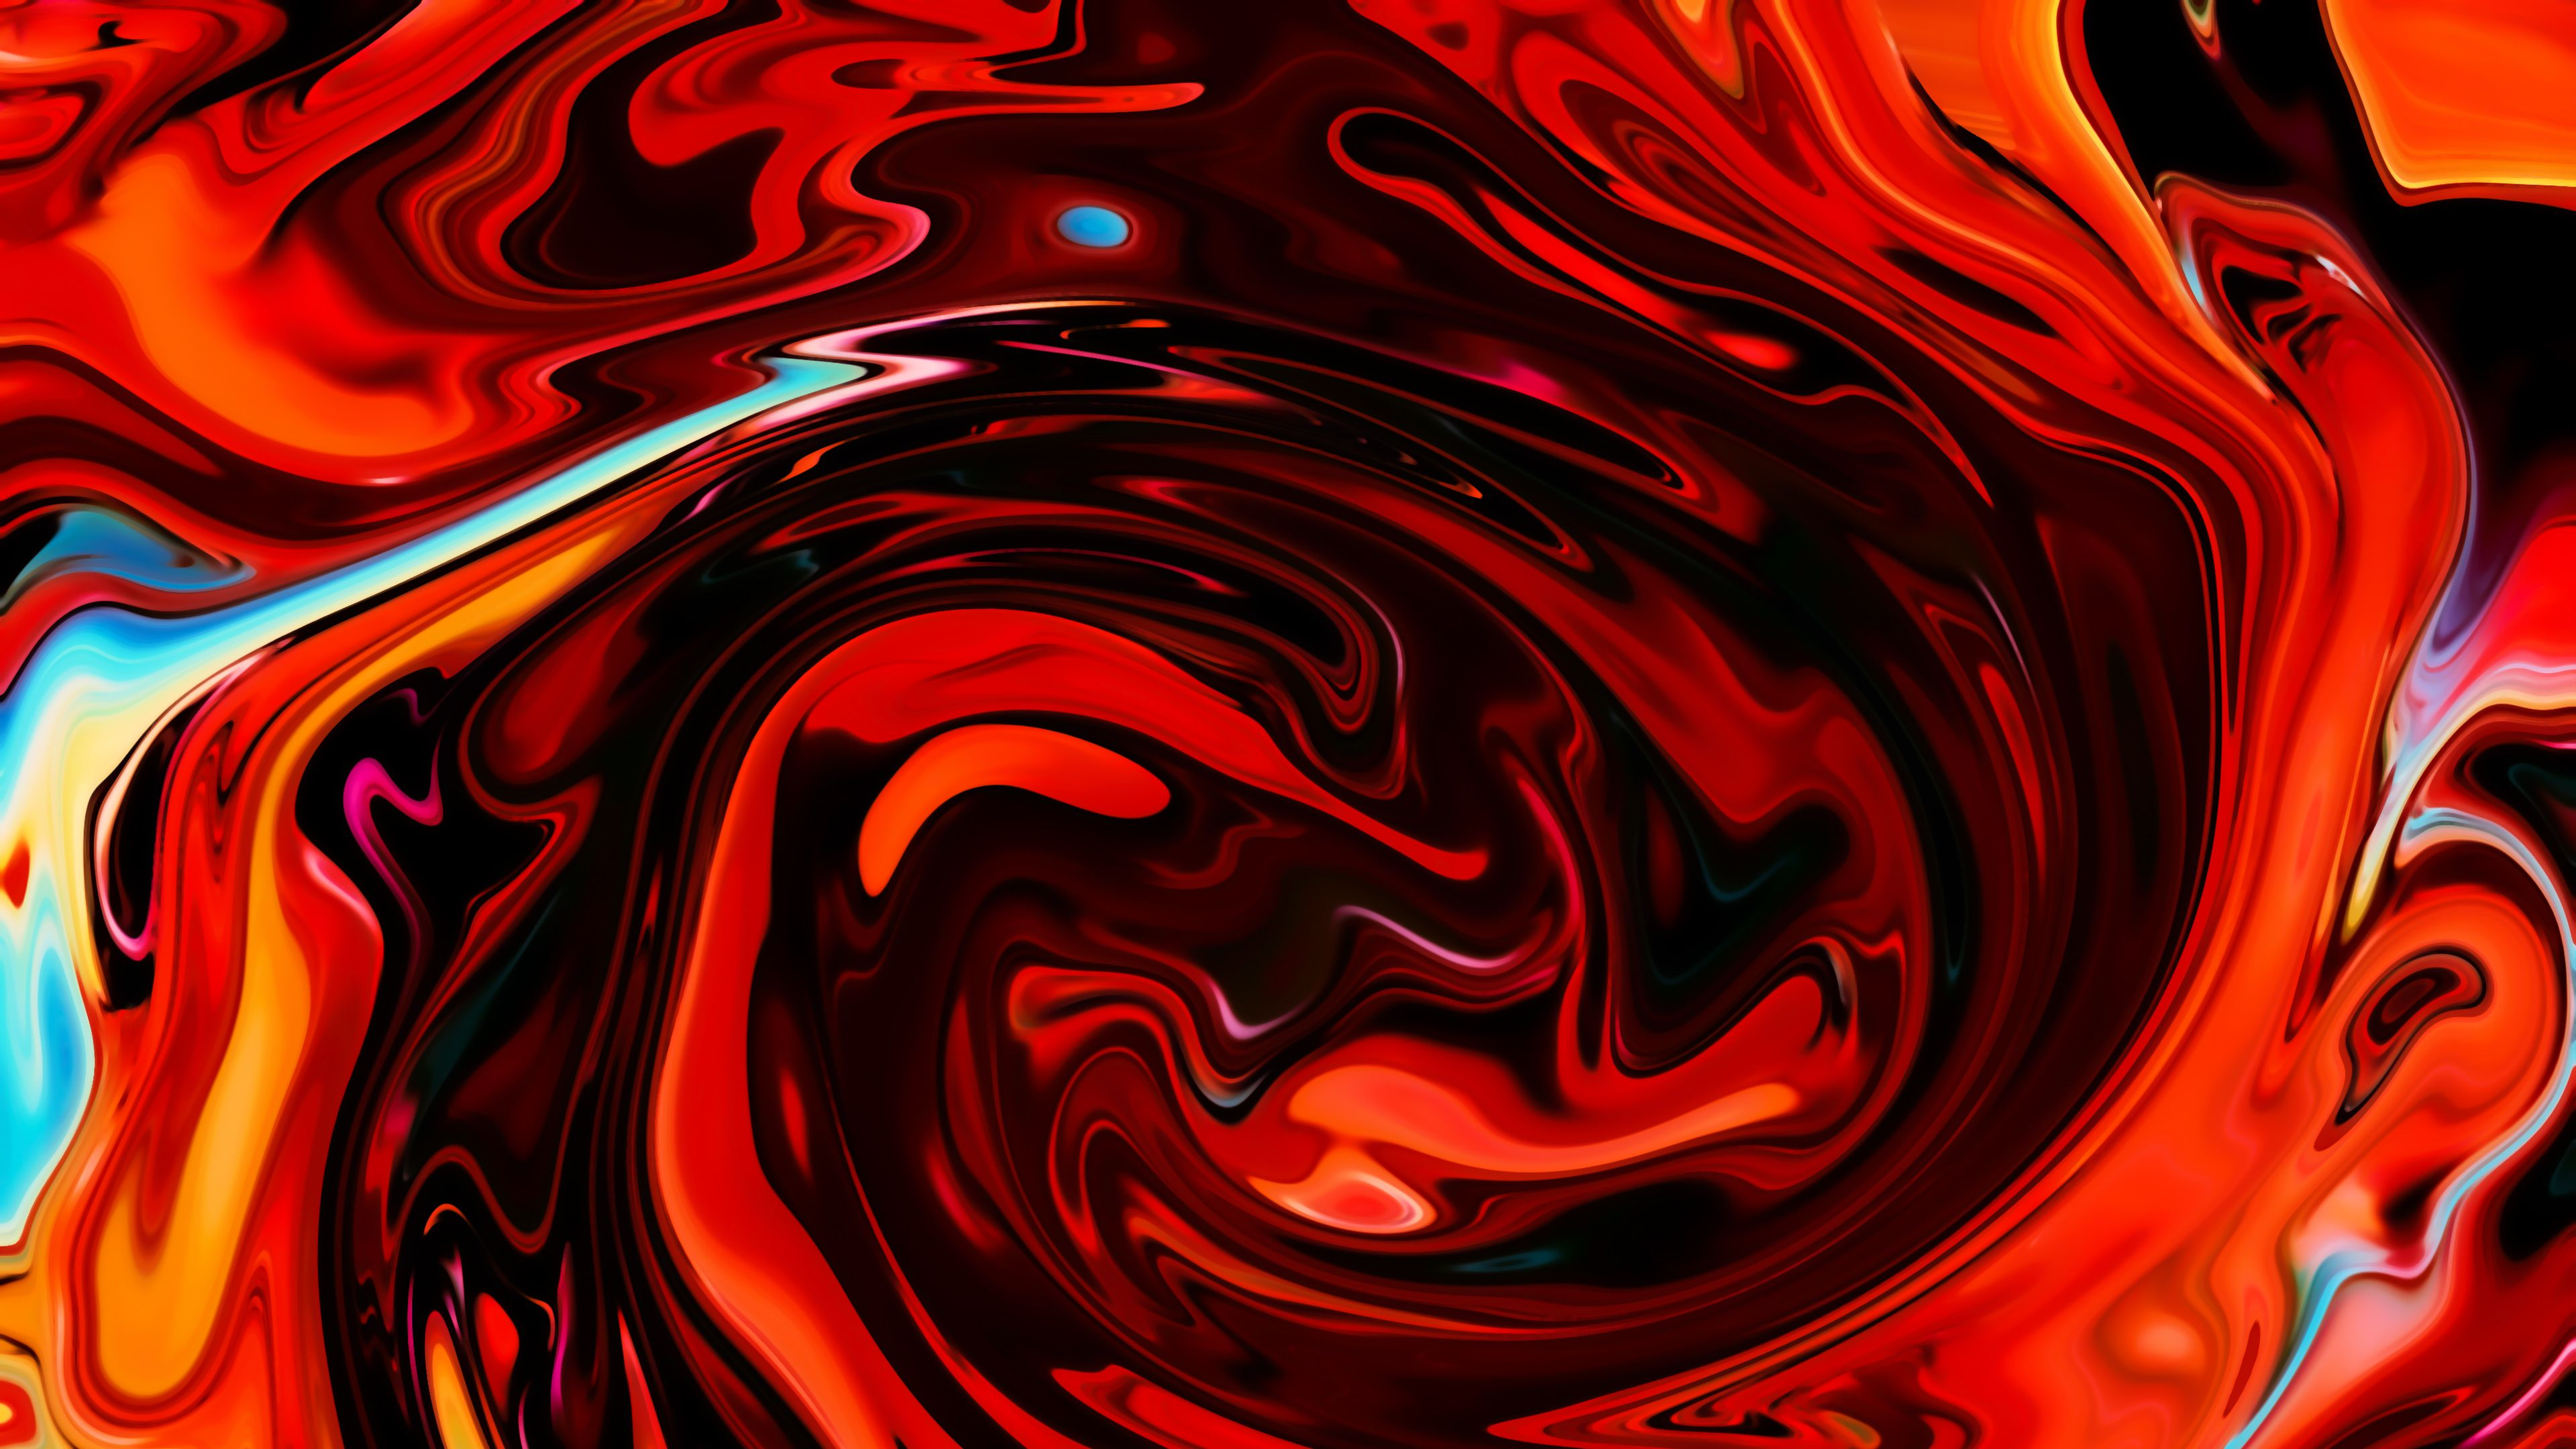 Red Swirl Float Abstract 4k Red Swirl Float Abstract 4k Wallpapers Abstract Swirl Abstract Wallpaper